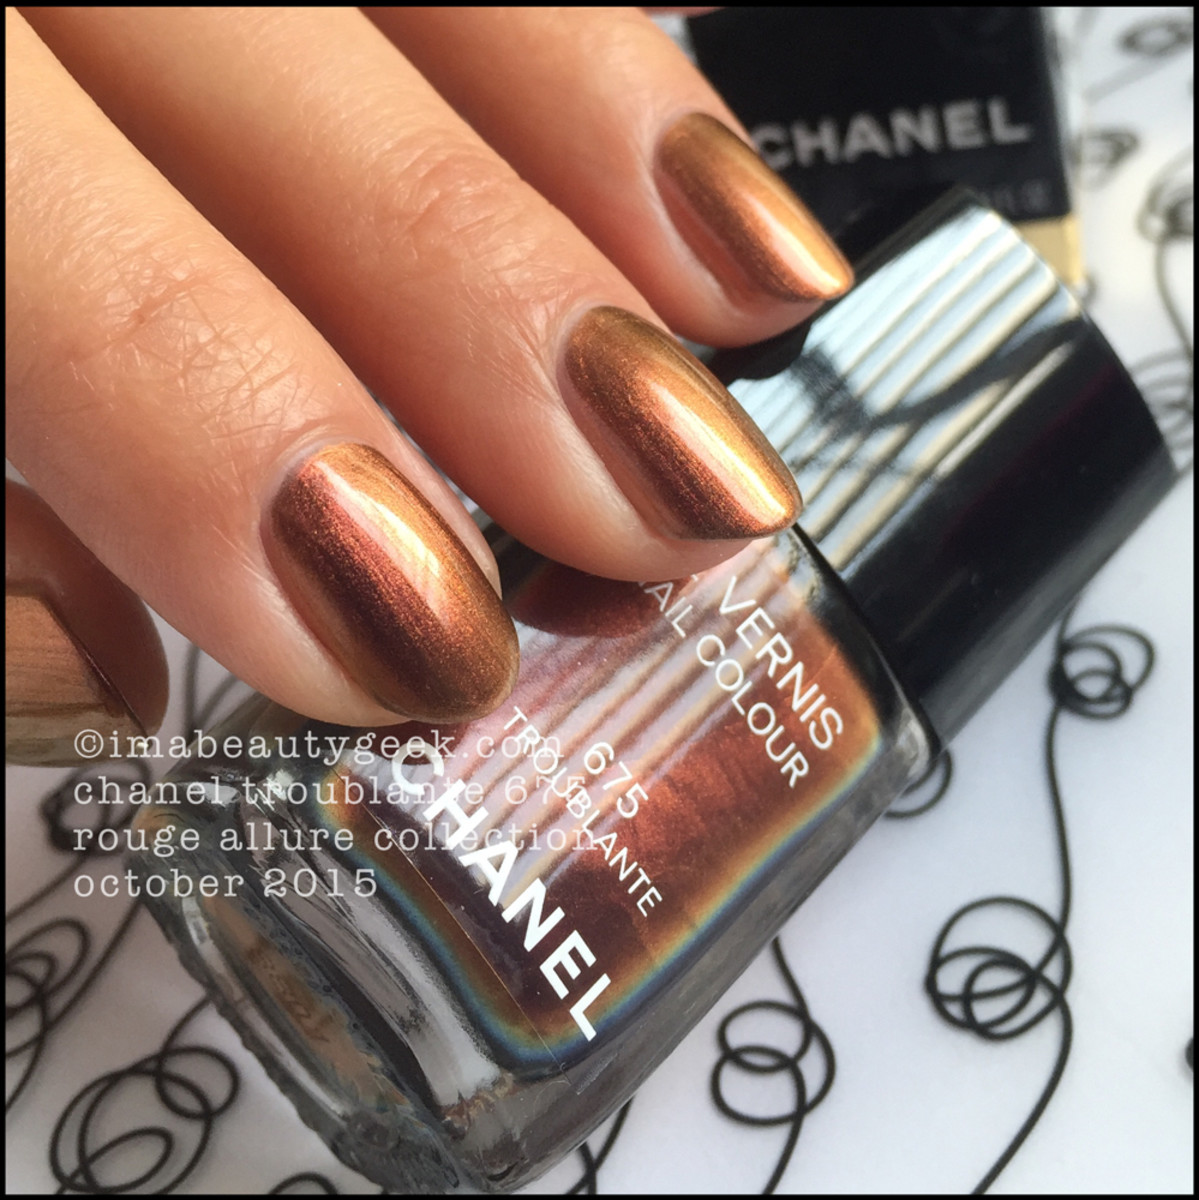 Chanel Le Vernis Troublante 675 Rouge Allure Collection 2015 _ 3